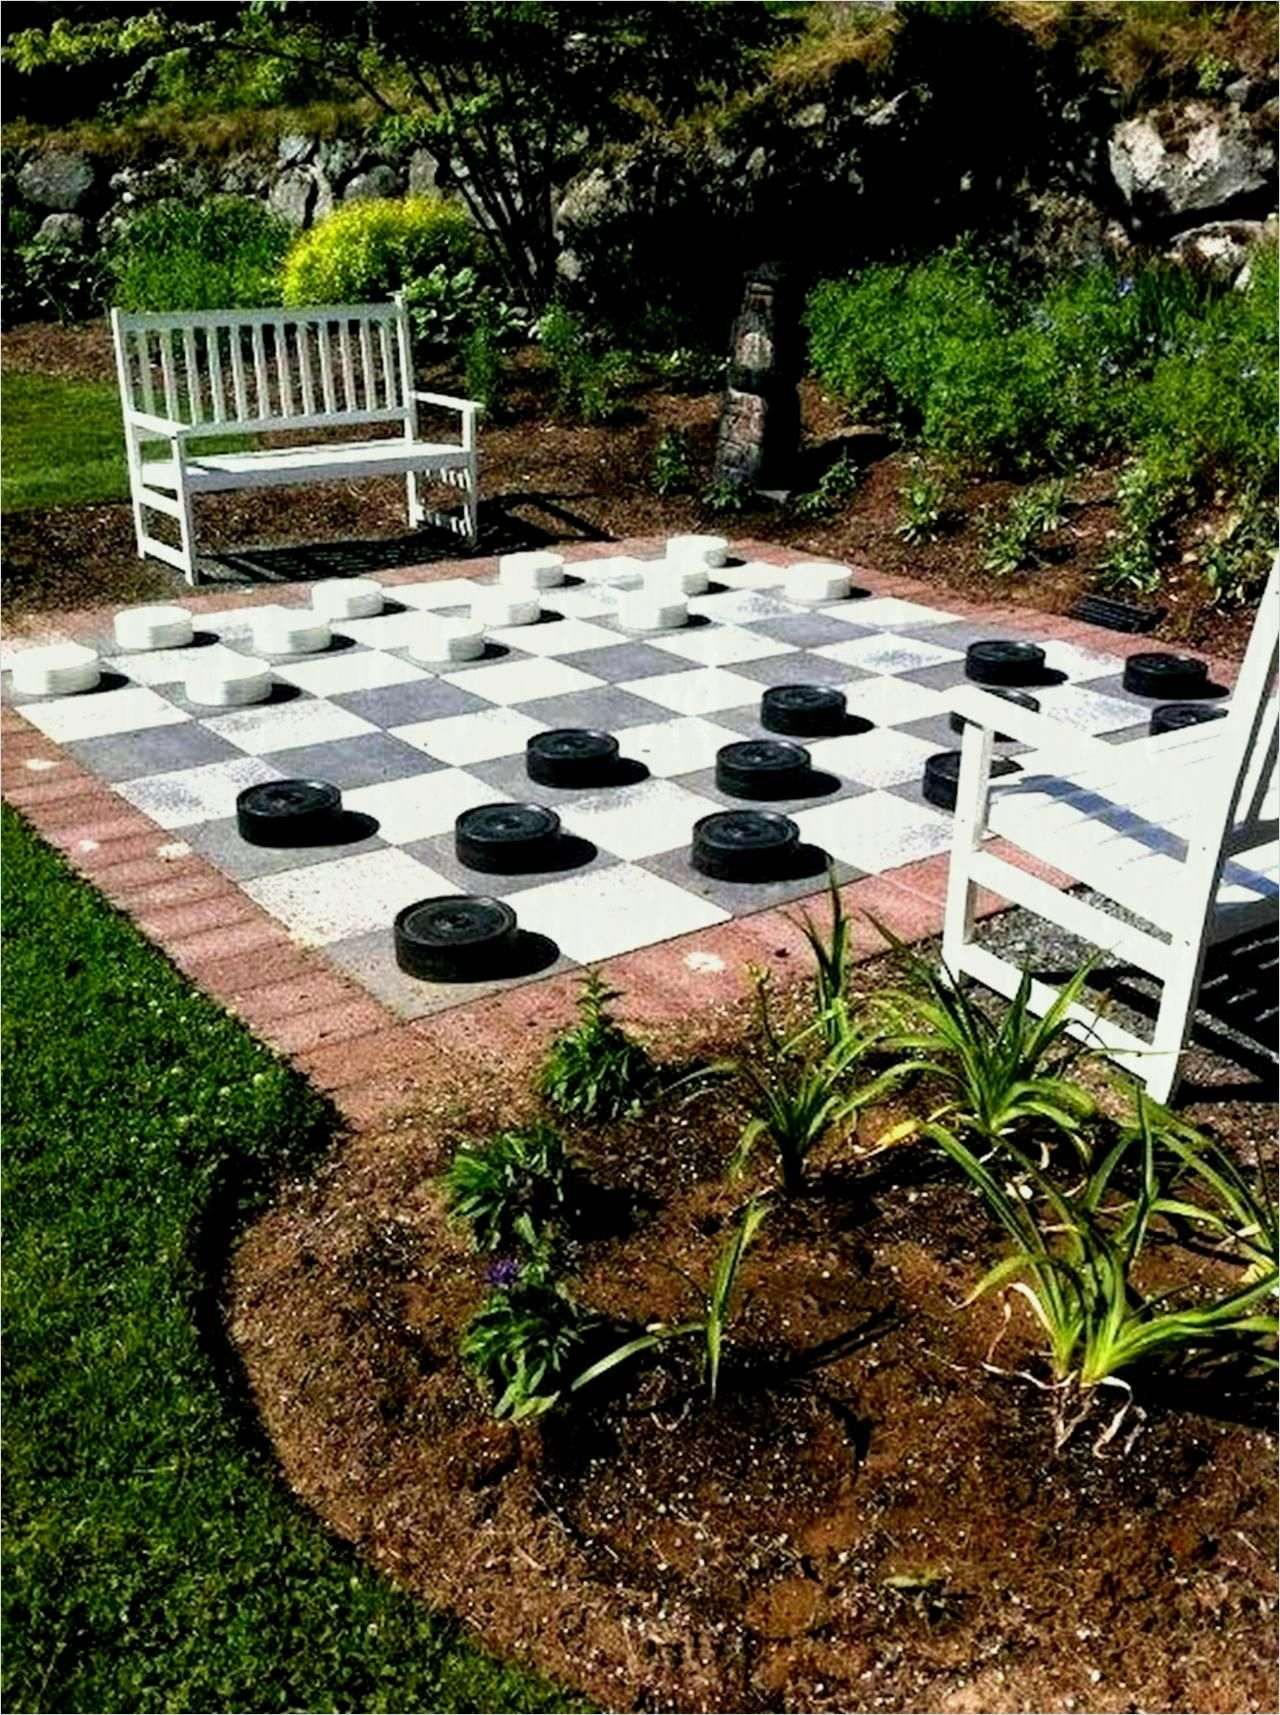 37 Diy Landscaping Ideas On A Budget That Will Amaze You